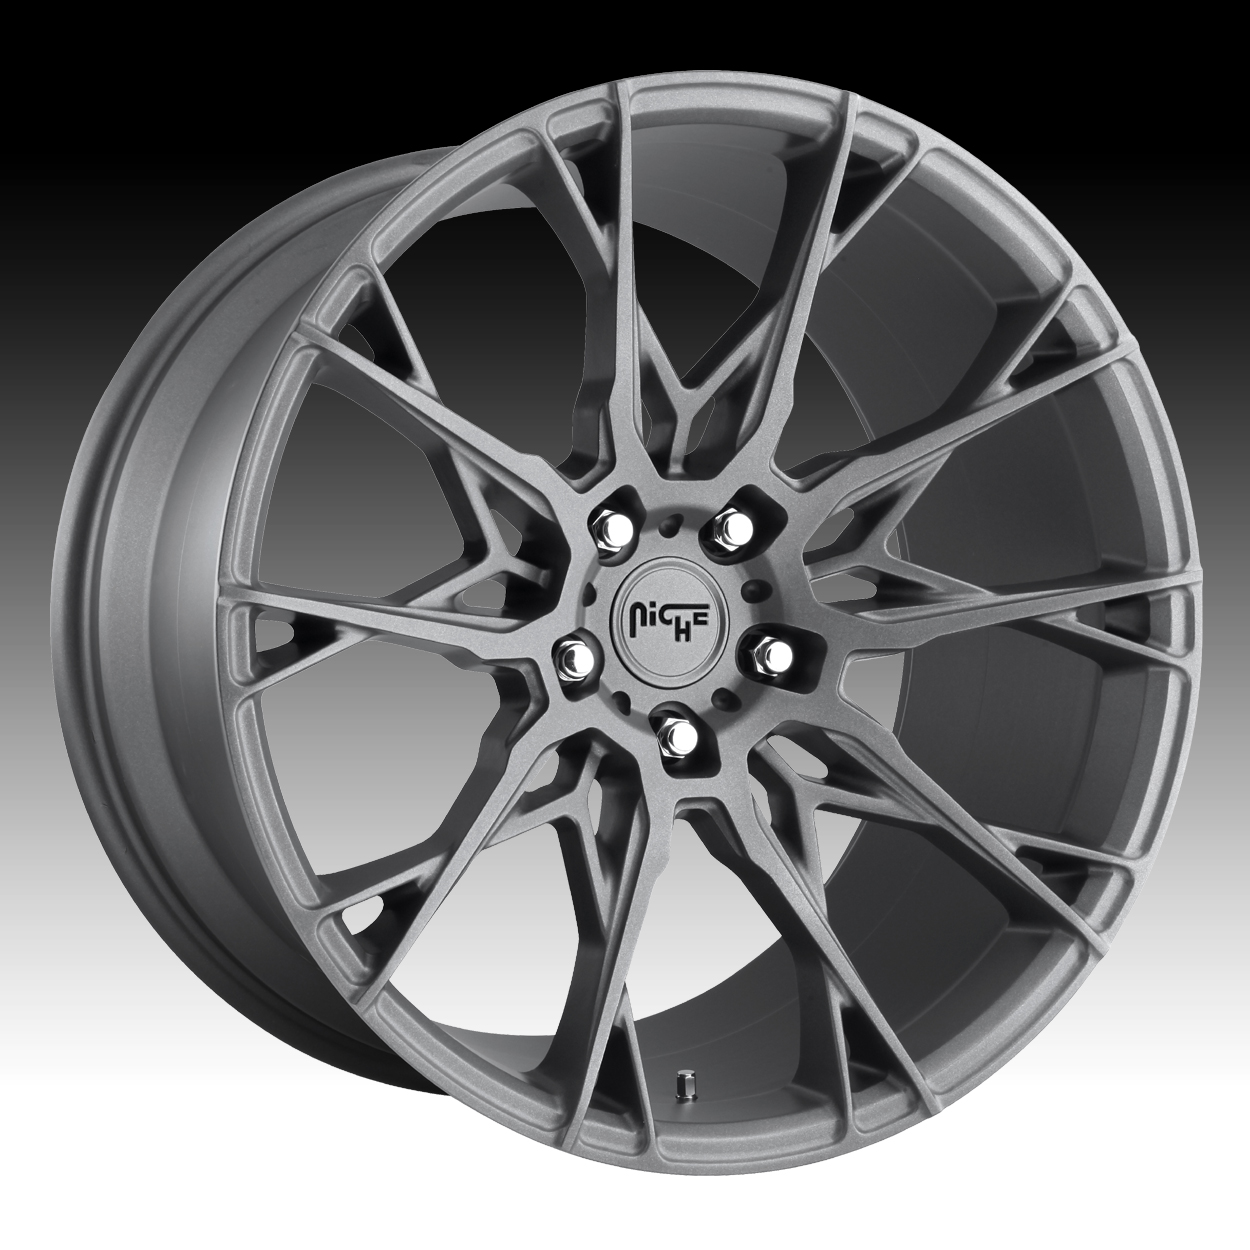 Niche Road Wheels >> Niche Staccato M182 Matte Anthracite Custom Wheels Rims